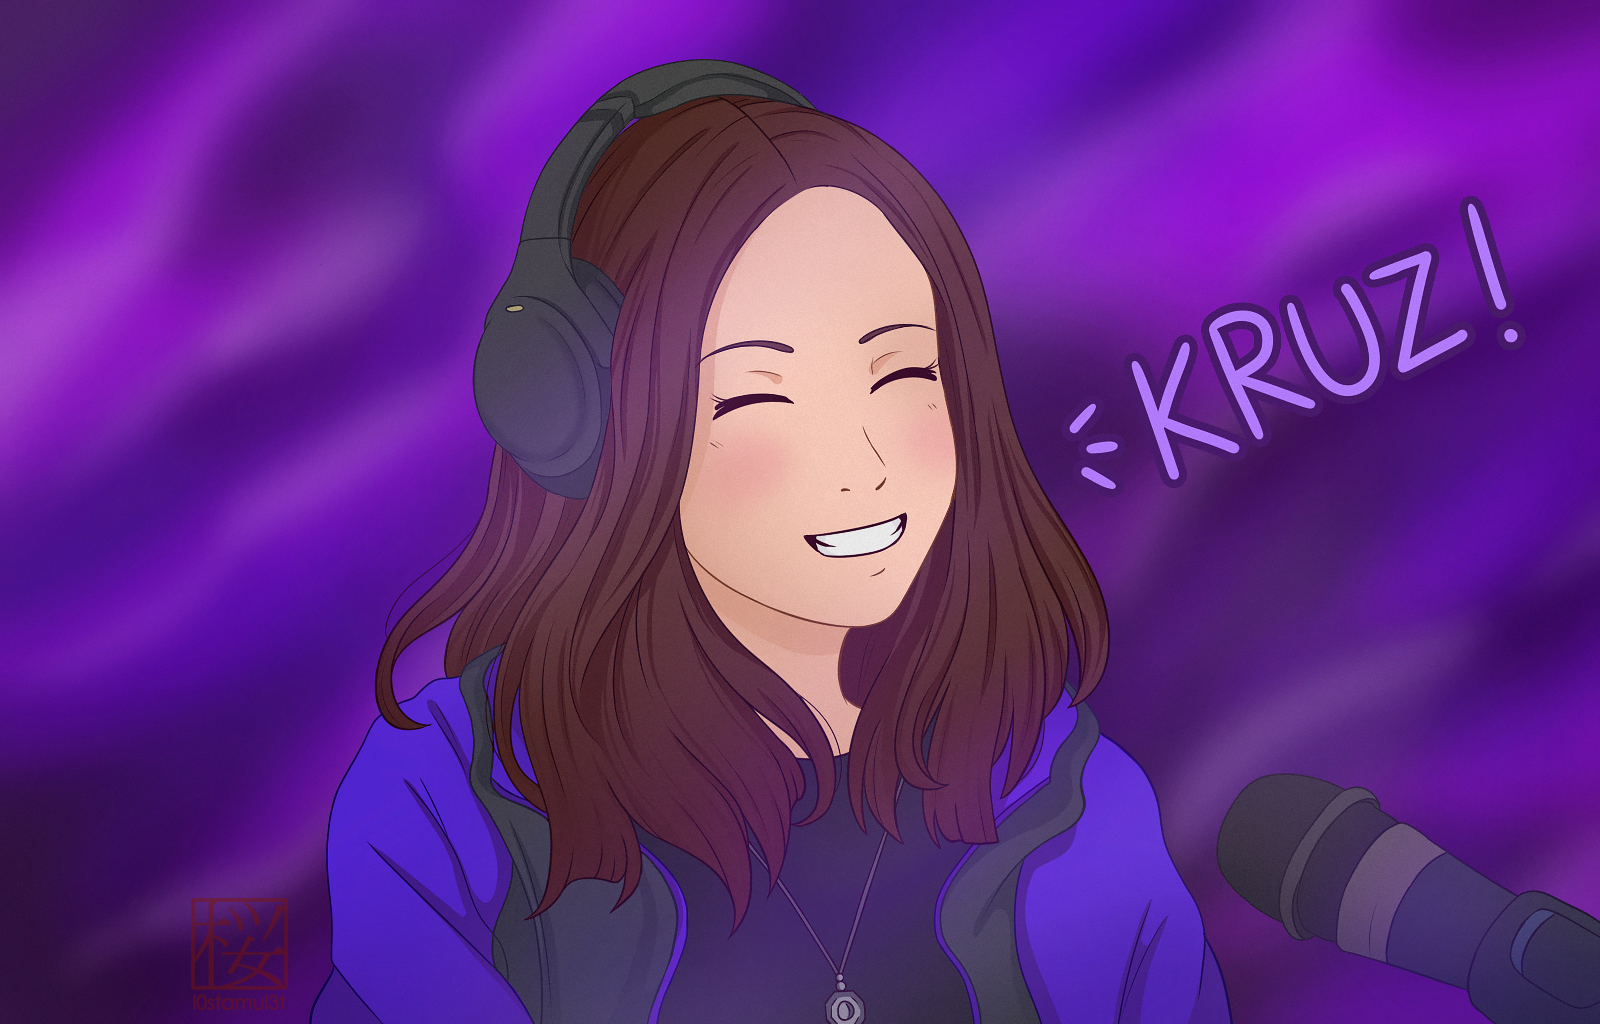 Meet Kruzadar, the woman who's kicking ass in the gaming industry.